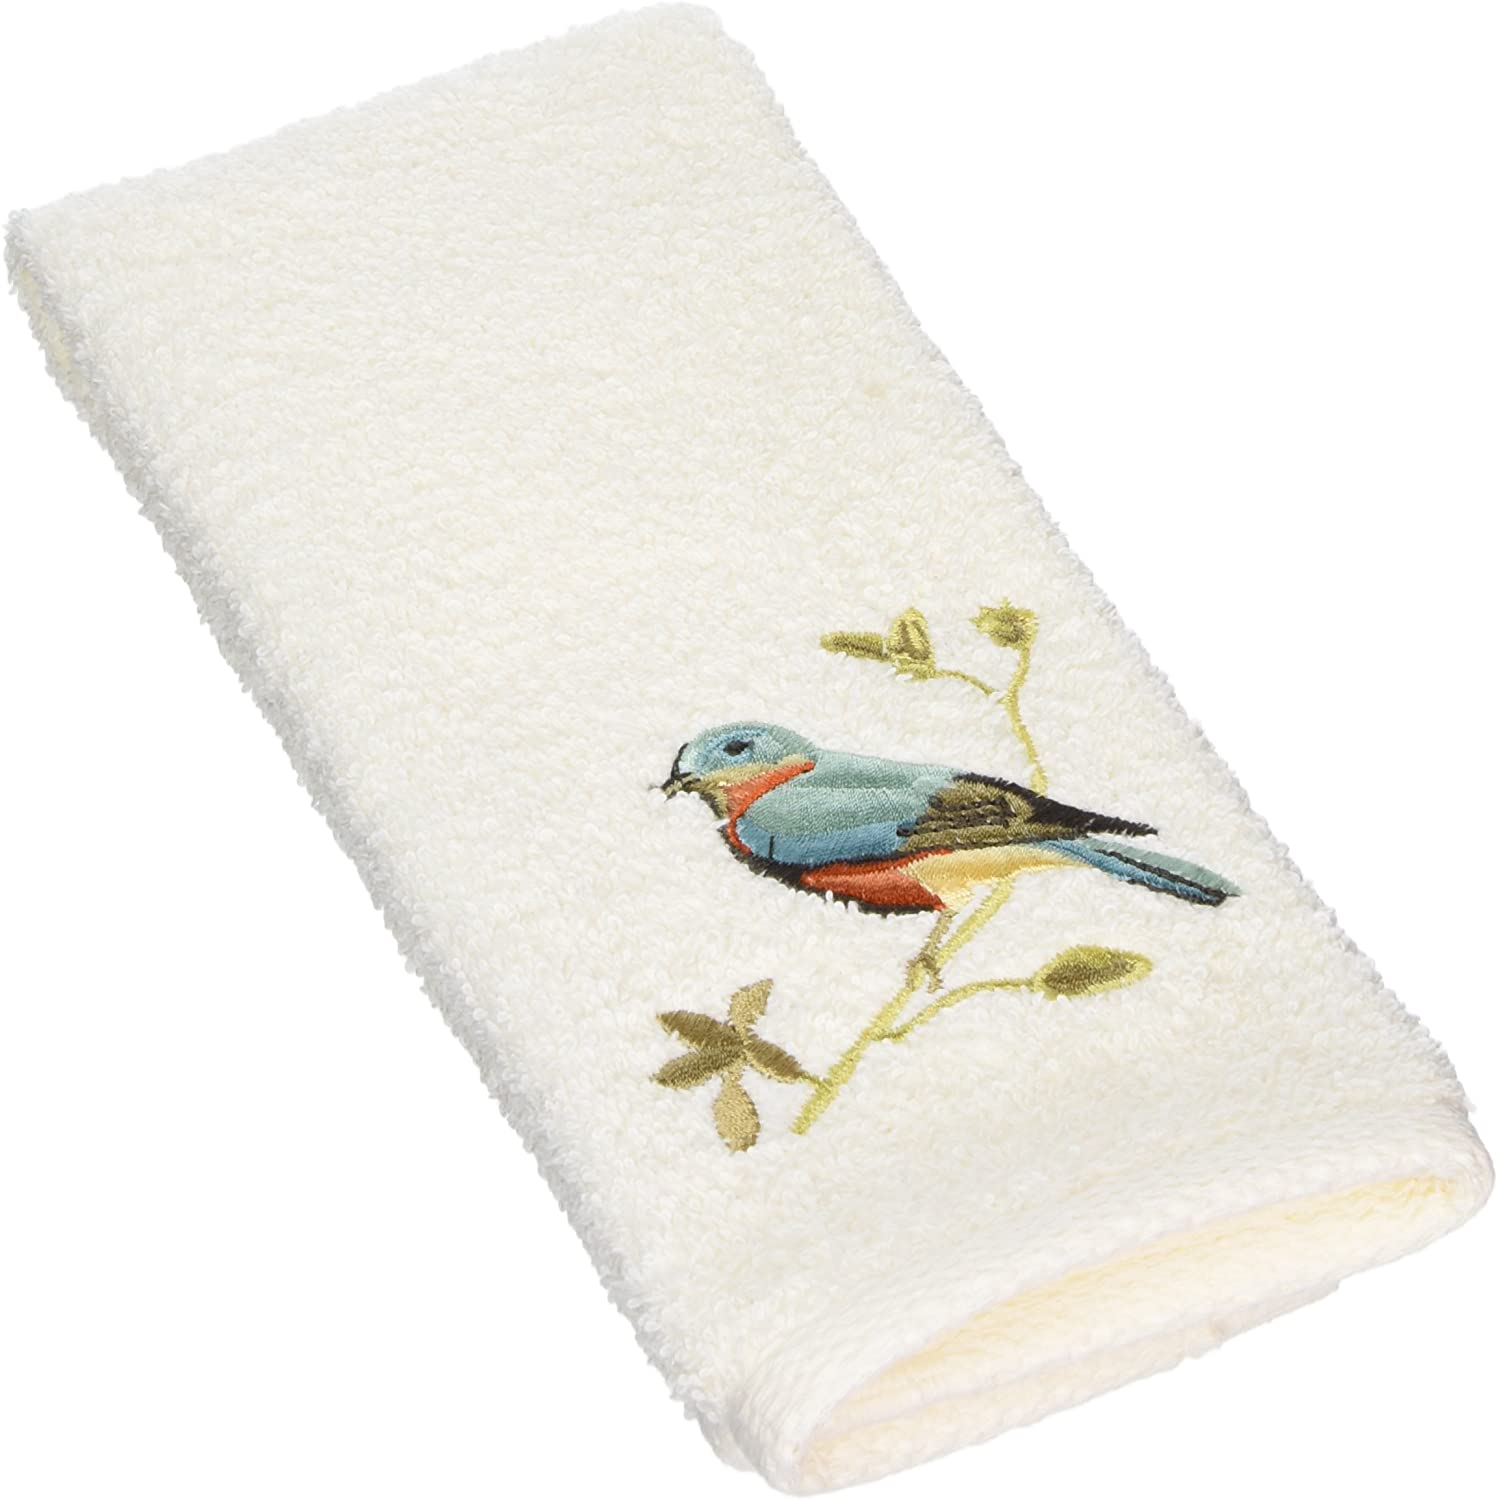 Avanti New color Linens Premier Songbirds Fingertip Collection Towel Ivo Recommended